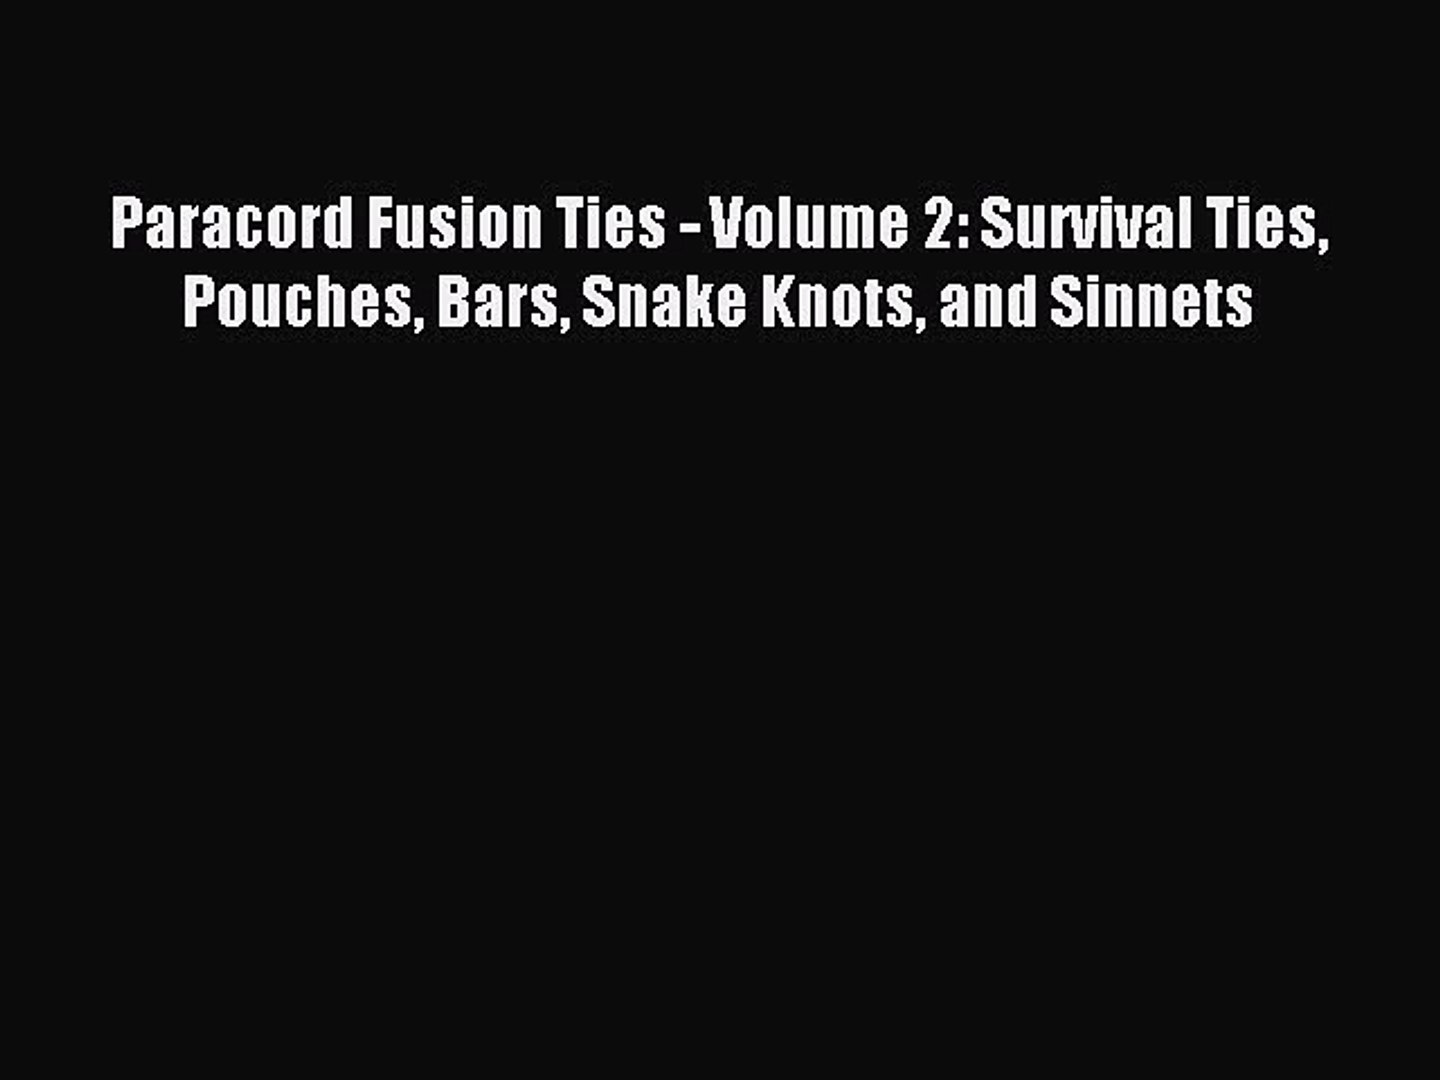 [Download PDF] Paracord Fusion Ties - Volume 2: Survival Ties Pouches Bars Snake Knots and